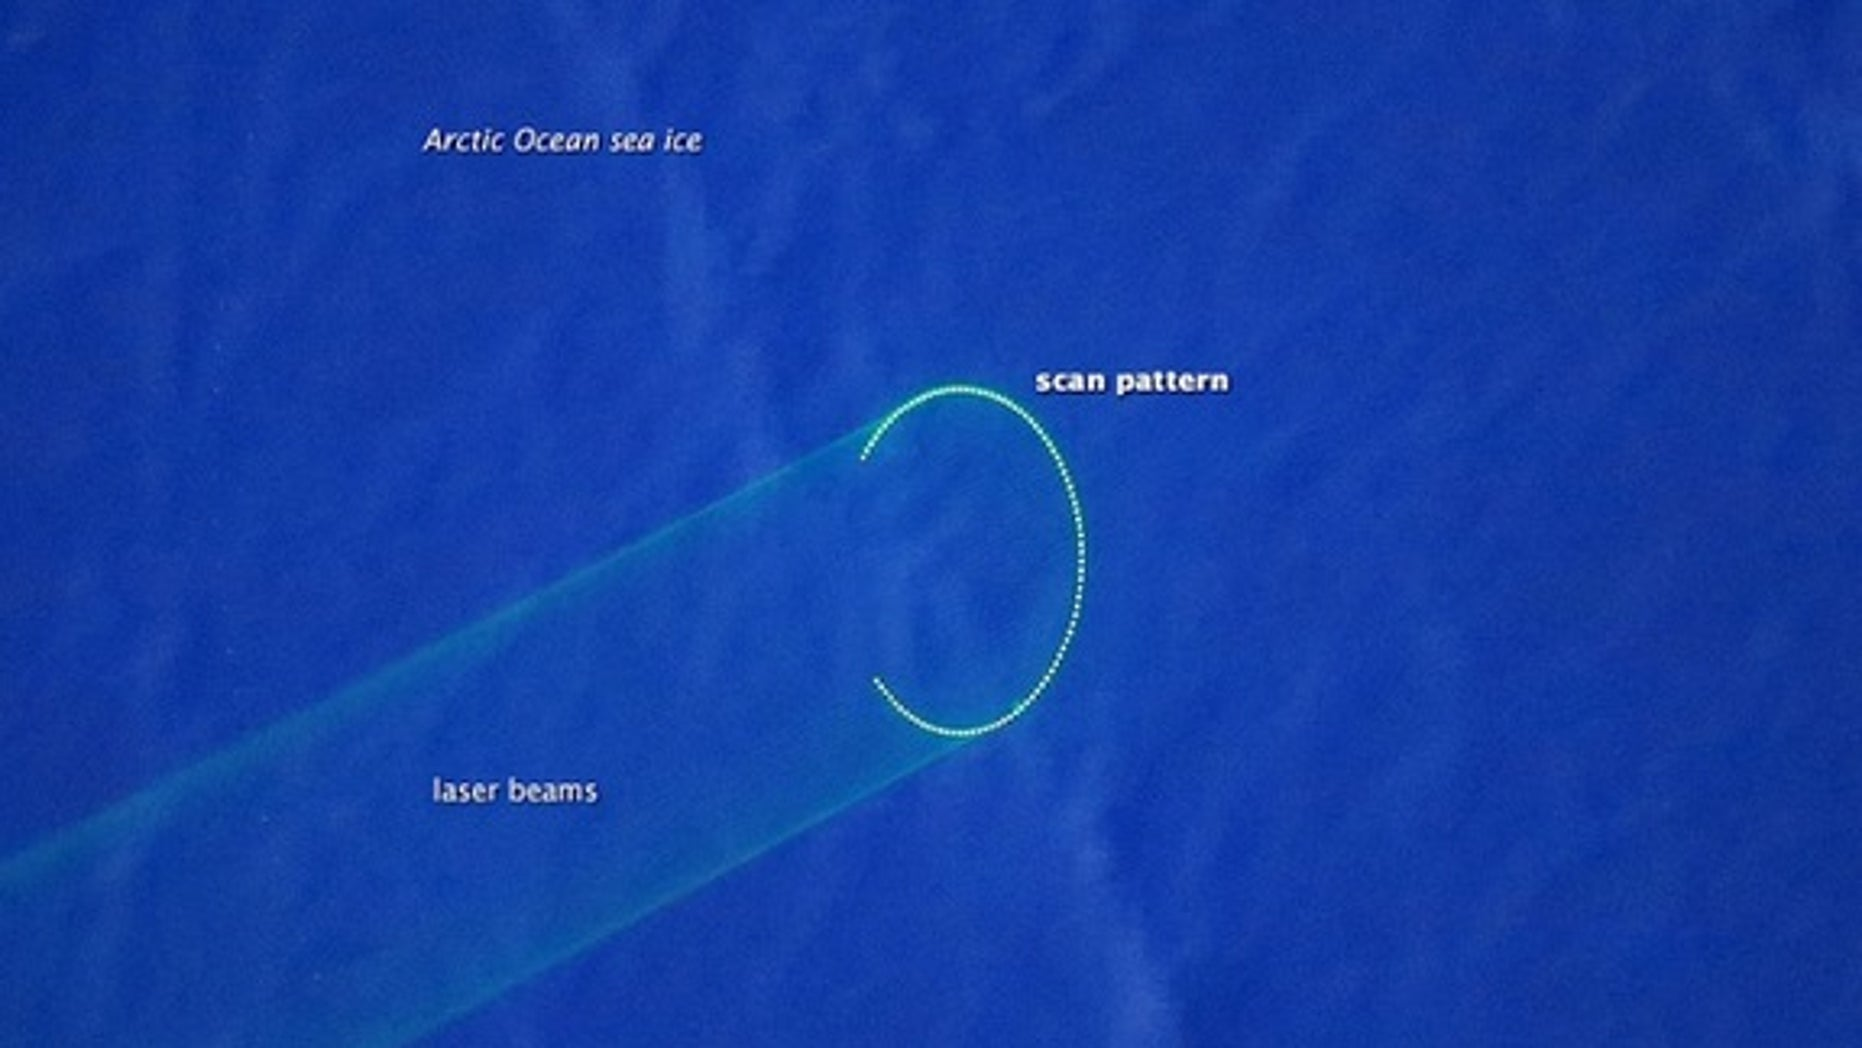 The laser beams seen in this image are used to scan Arctic sea ice.